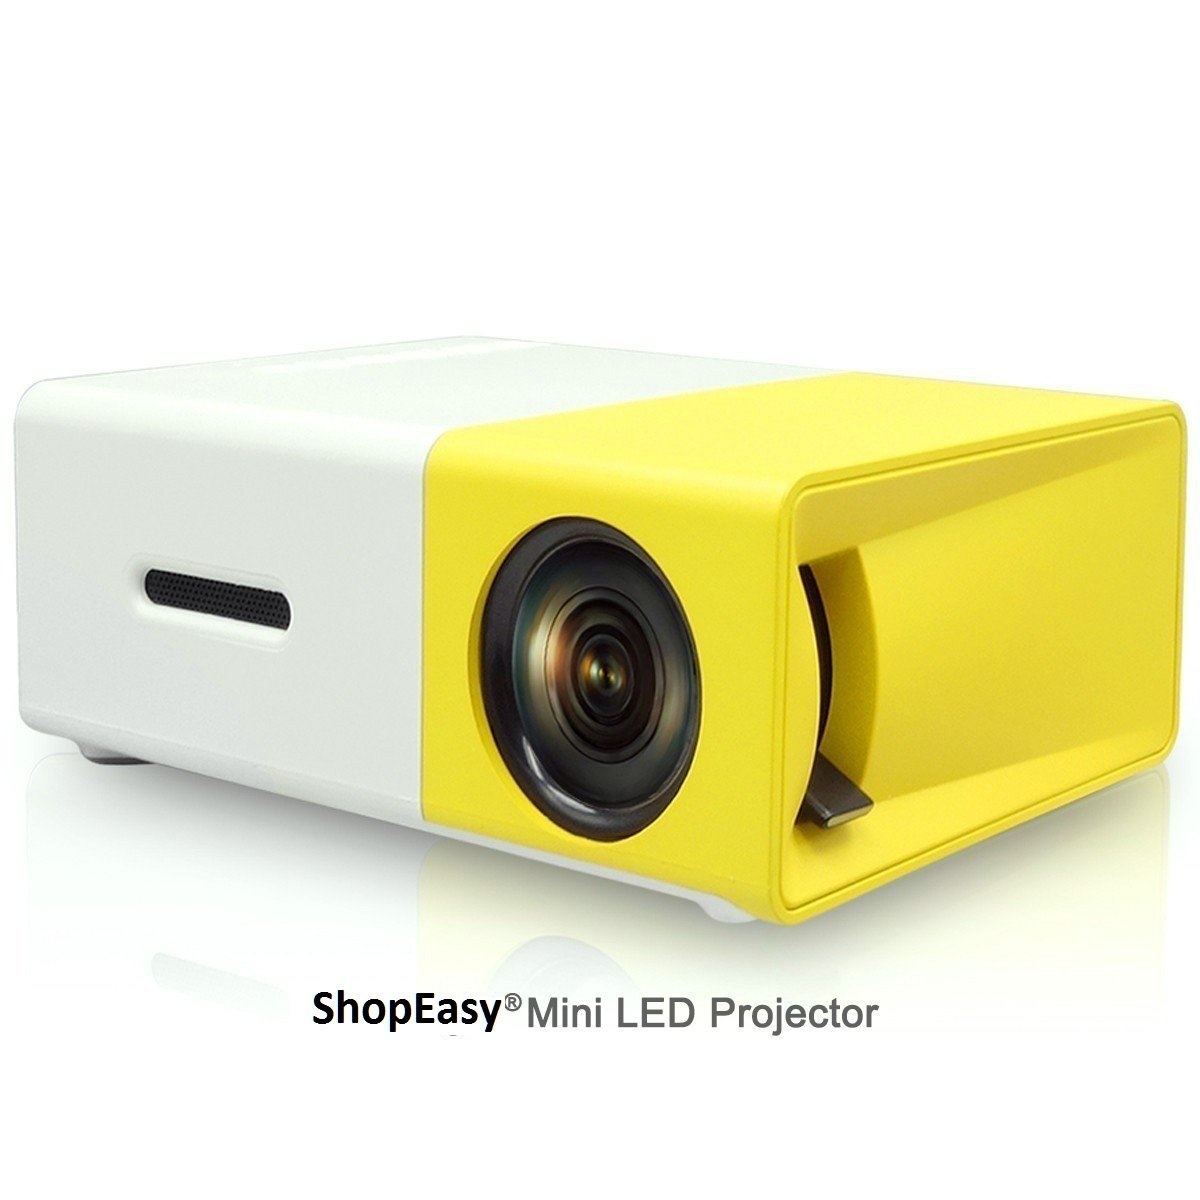 Mini Projecteur AMATEUR 600 Lumen Film Pour la Famille - Version JAUNE - Projecteur Home Cinema Projector pour PC Laptop USB/MiniSD/AV/HDMI - Video - Speaker Integre Headphone